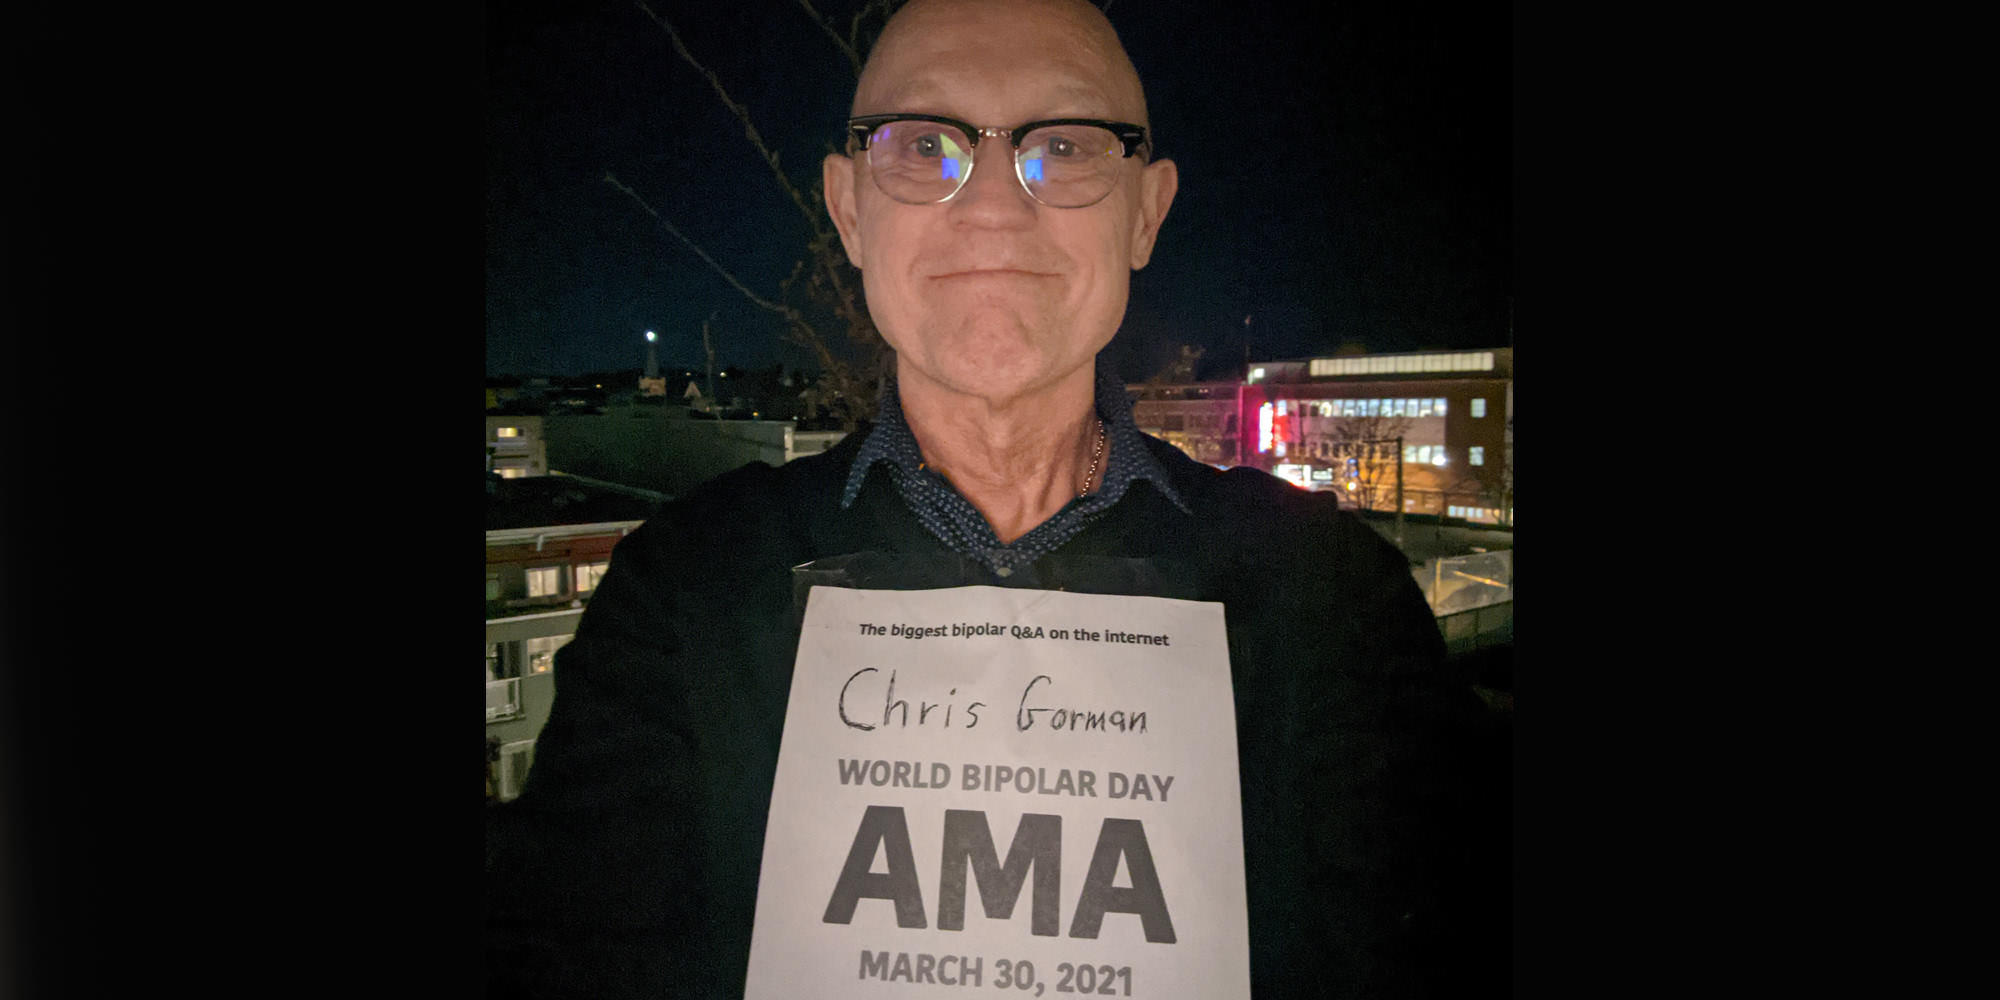 Chris is standing up outdoors at night, perhaps a higher-floor balcony. Buildings with lit windows are in the background. He is Caucasian and is bald and wearing horn-rimmed glasses and a dark sweater with a navy blue collar showing from his shirt underneath. He is holding the AMA proof sign.